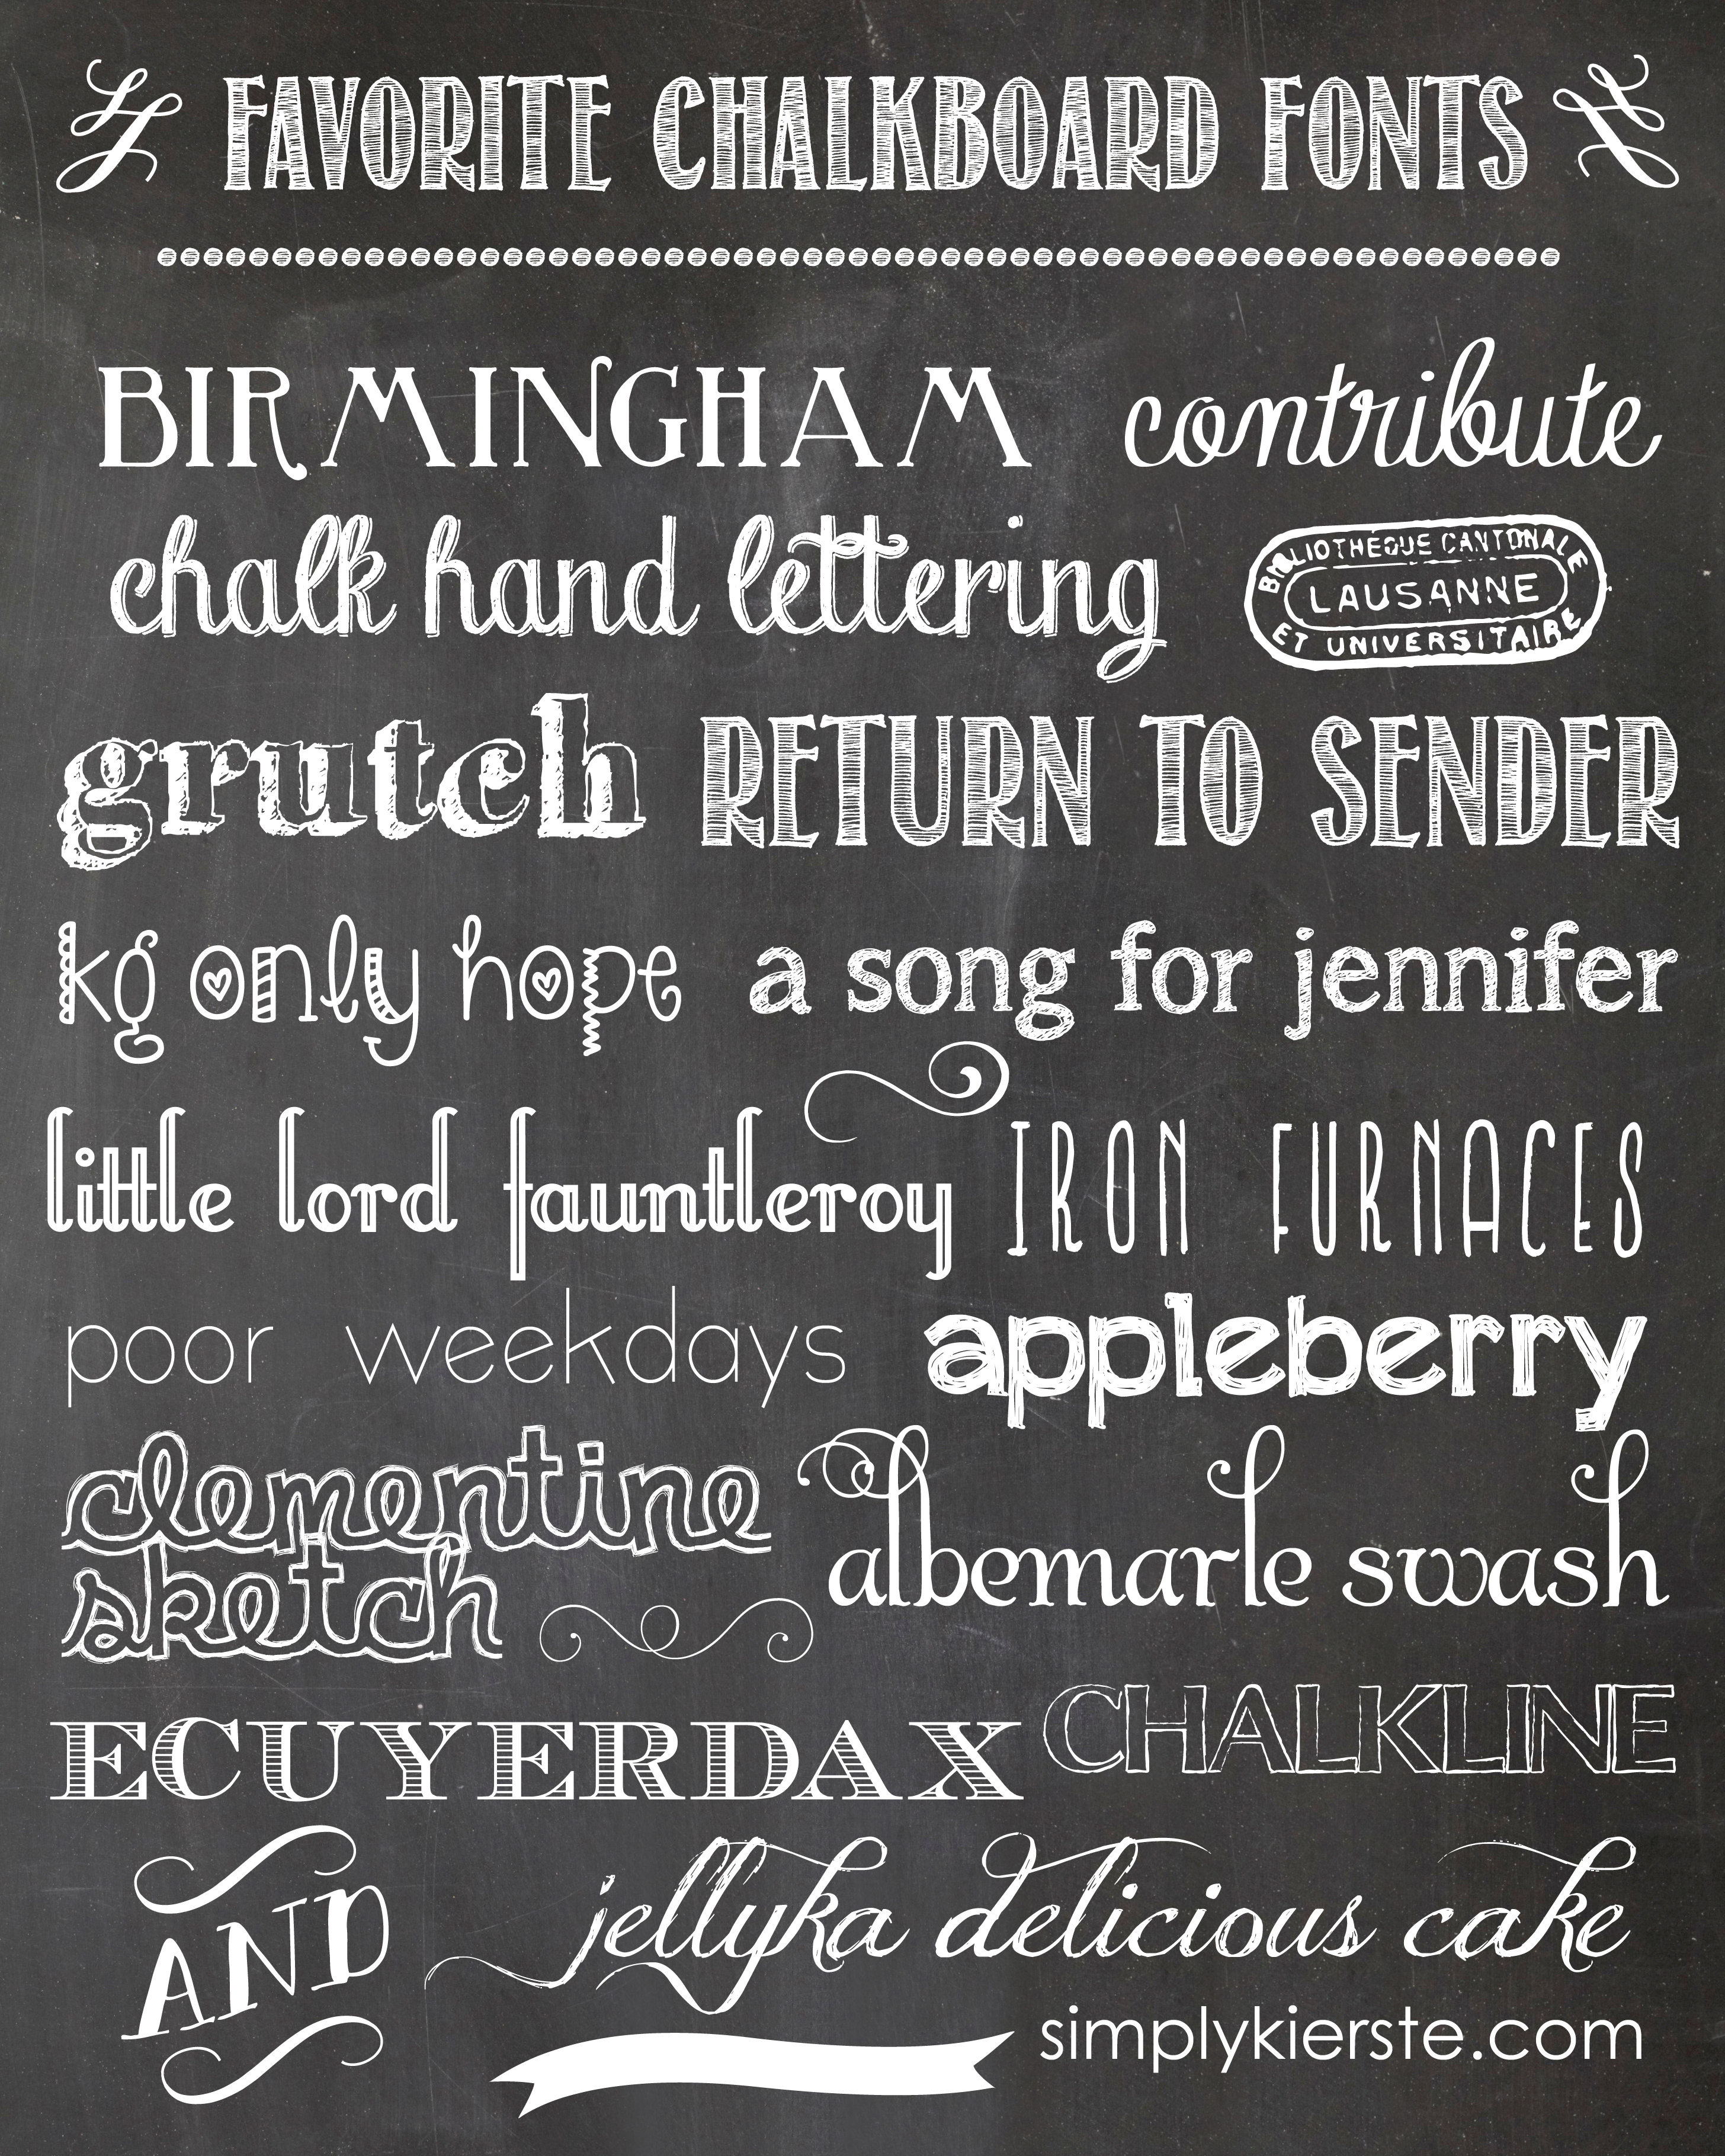 photograph relating to Printable Chalkboard Letters identify 13 Chalkboard Printable Fonts Alphabets Pics - Chalkboard